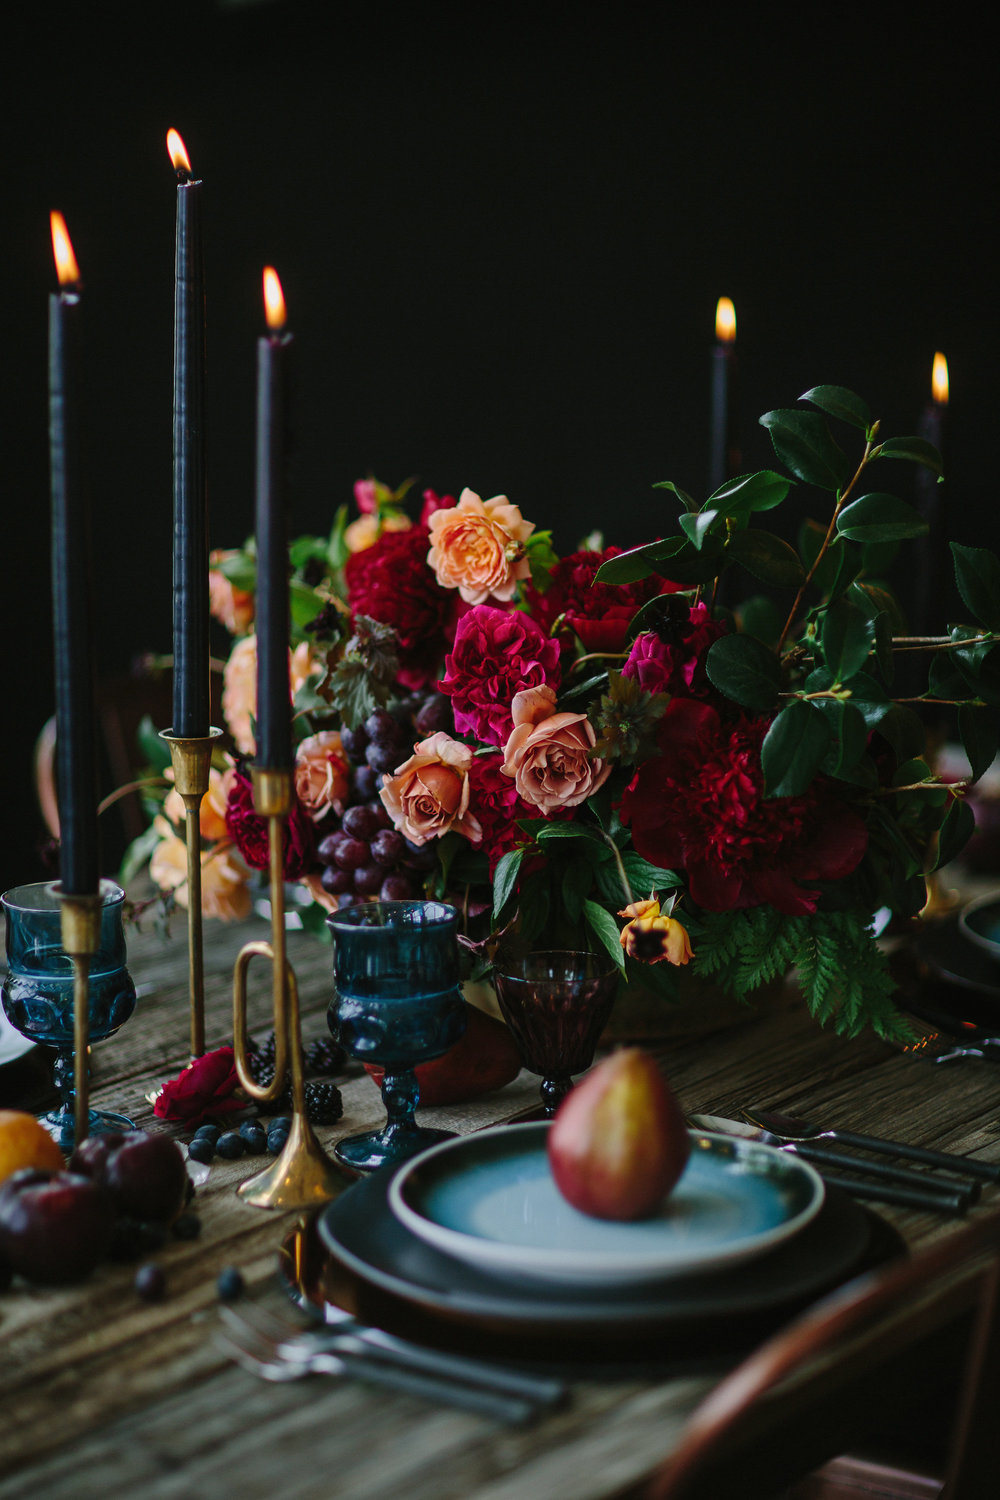 Dark Winter Wedding Inspiration with Jewel Tones & Black Candles